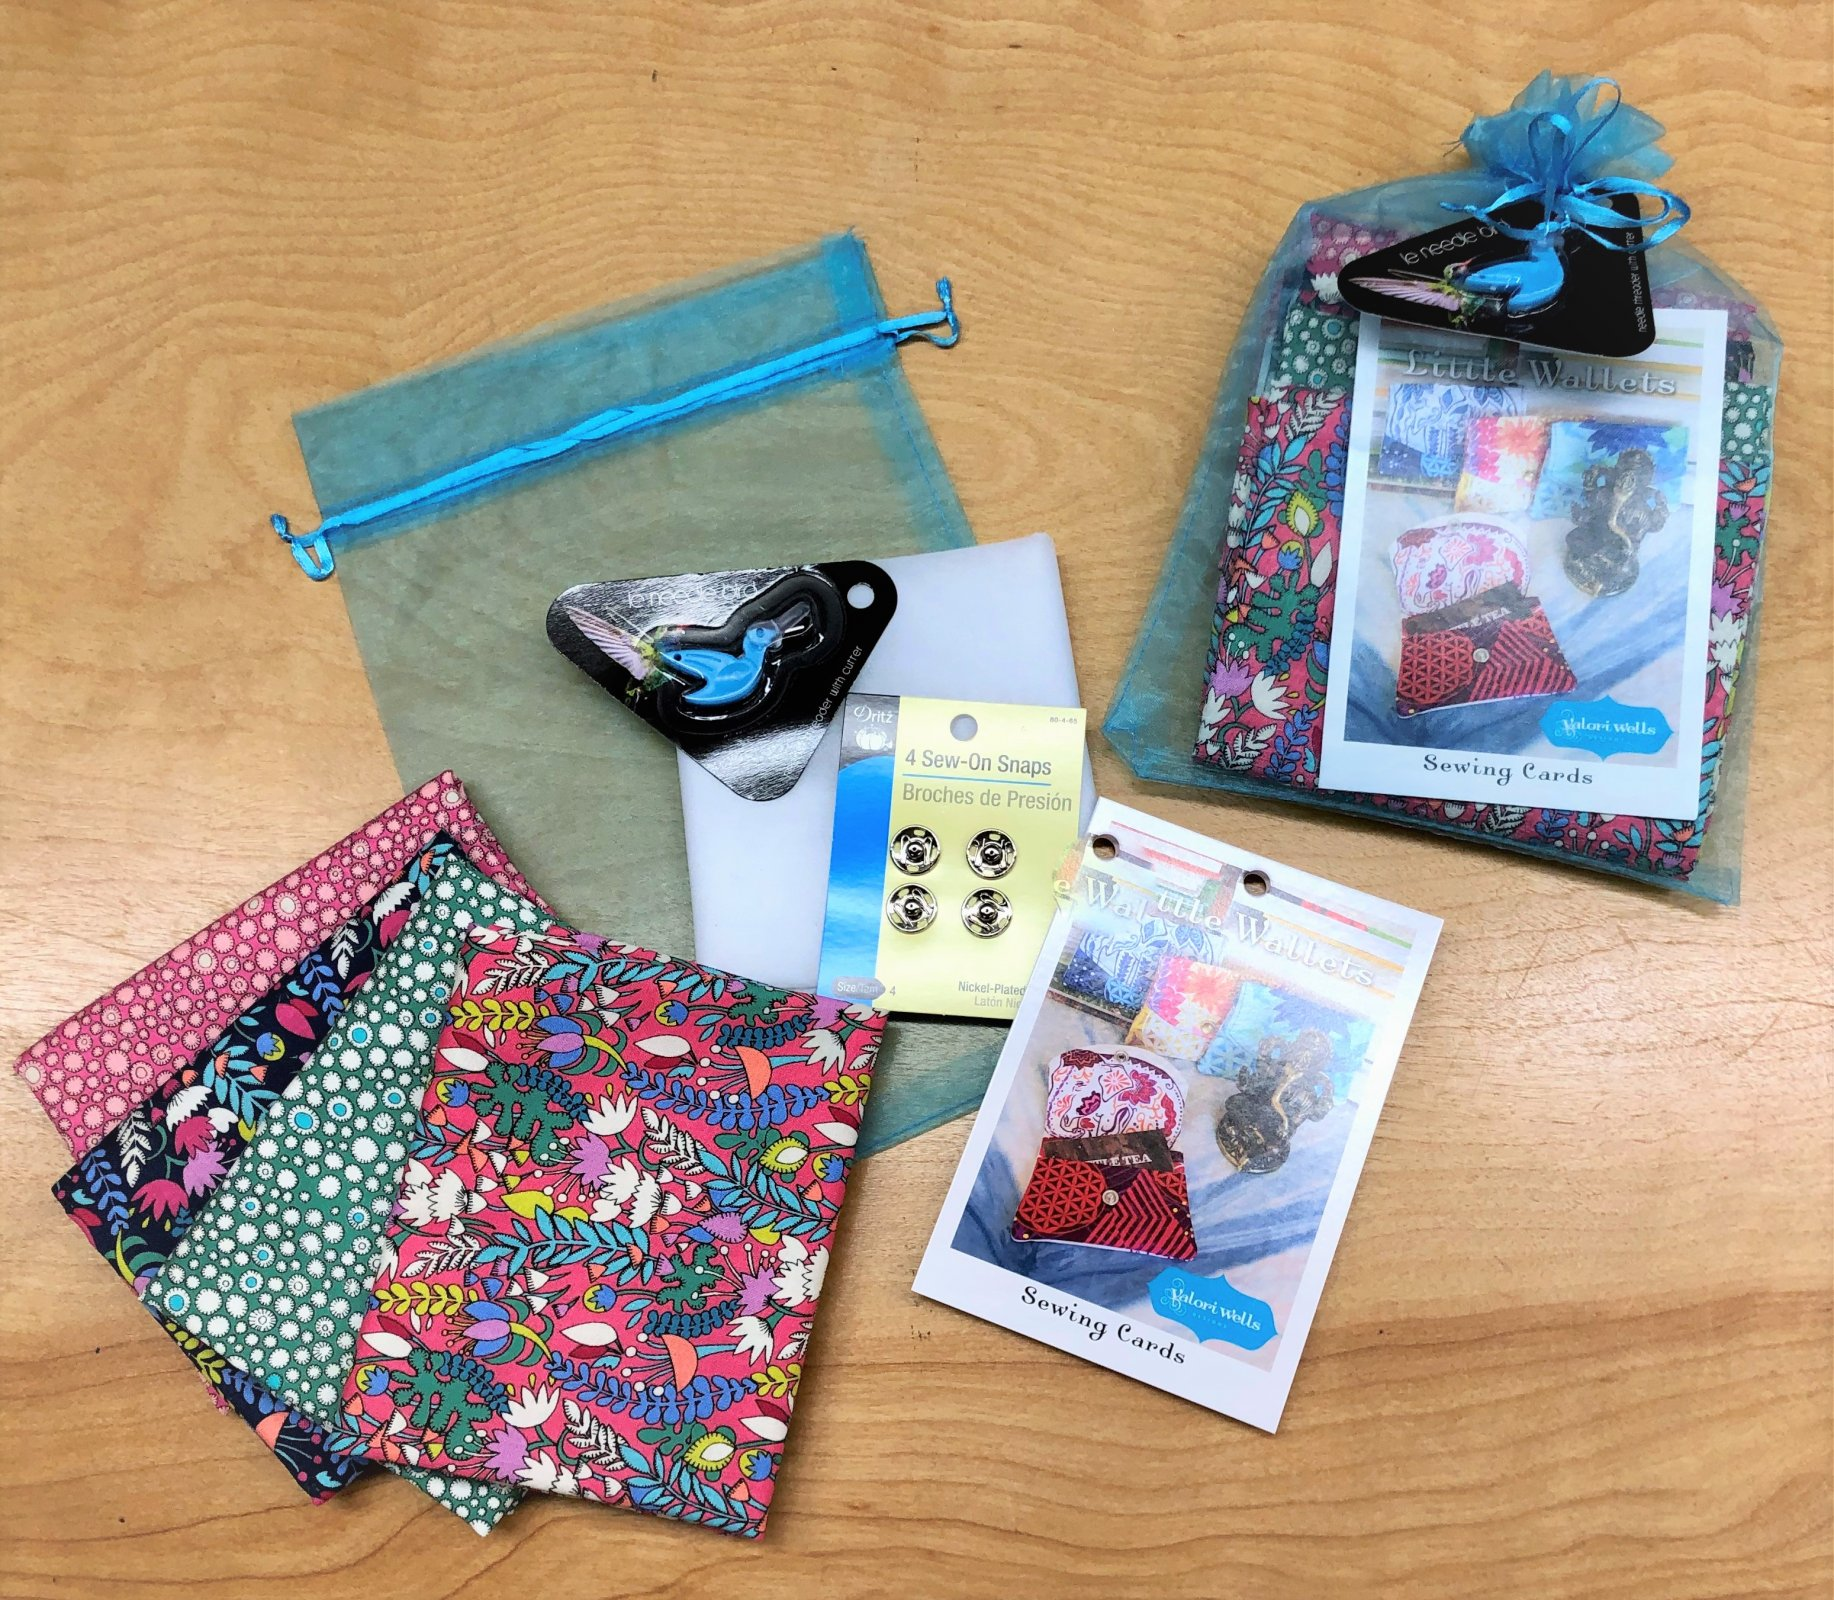 Little Wallets Gift Kit - Makes 2